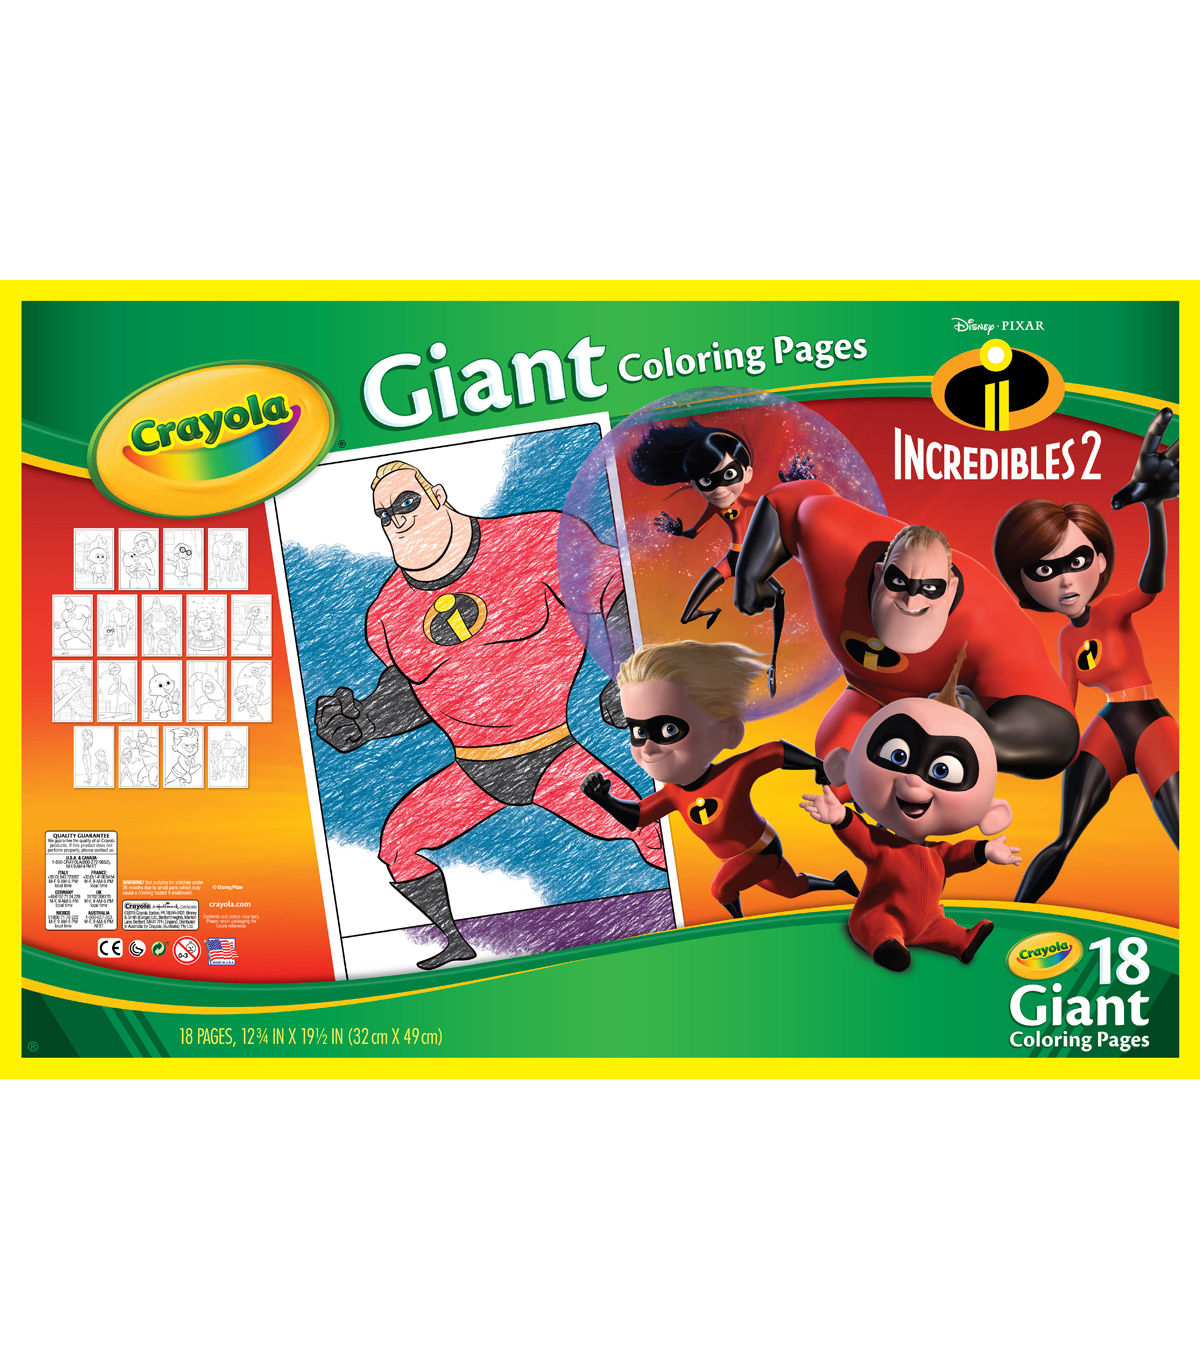 - Crayola Giant Coloring Pages Incredibles 2 JOANN